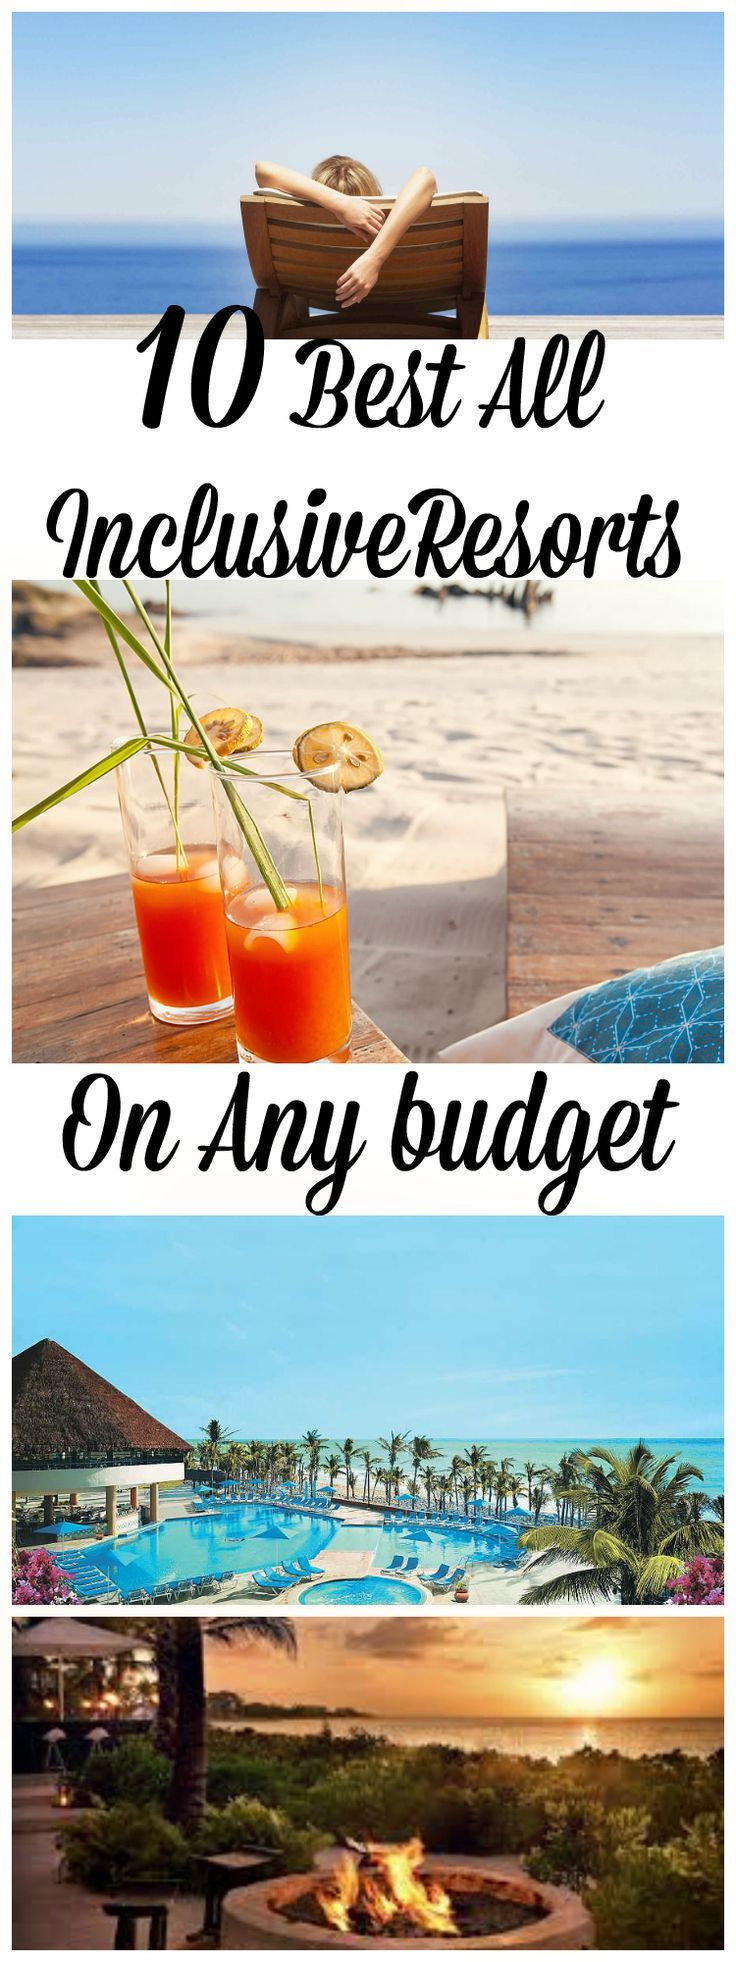 Want a tropical, warm, escape? Trying to run away from the winter blue? Check out these all-inclusive resorts that are budget friendly yet stunning. Get away and choose one of these great destinations because not all those that wander are lost...